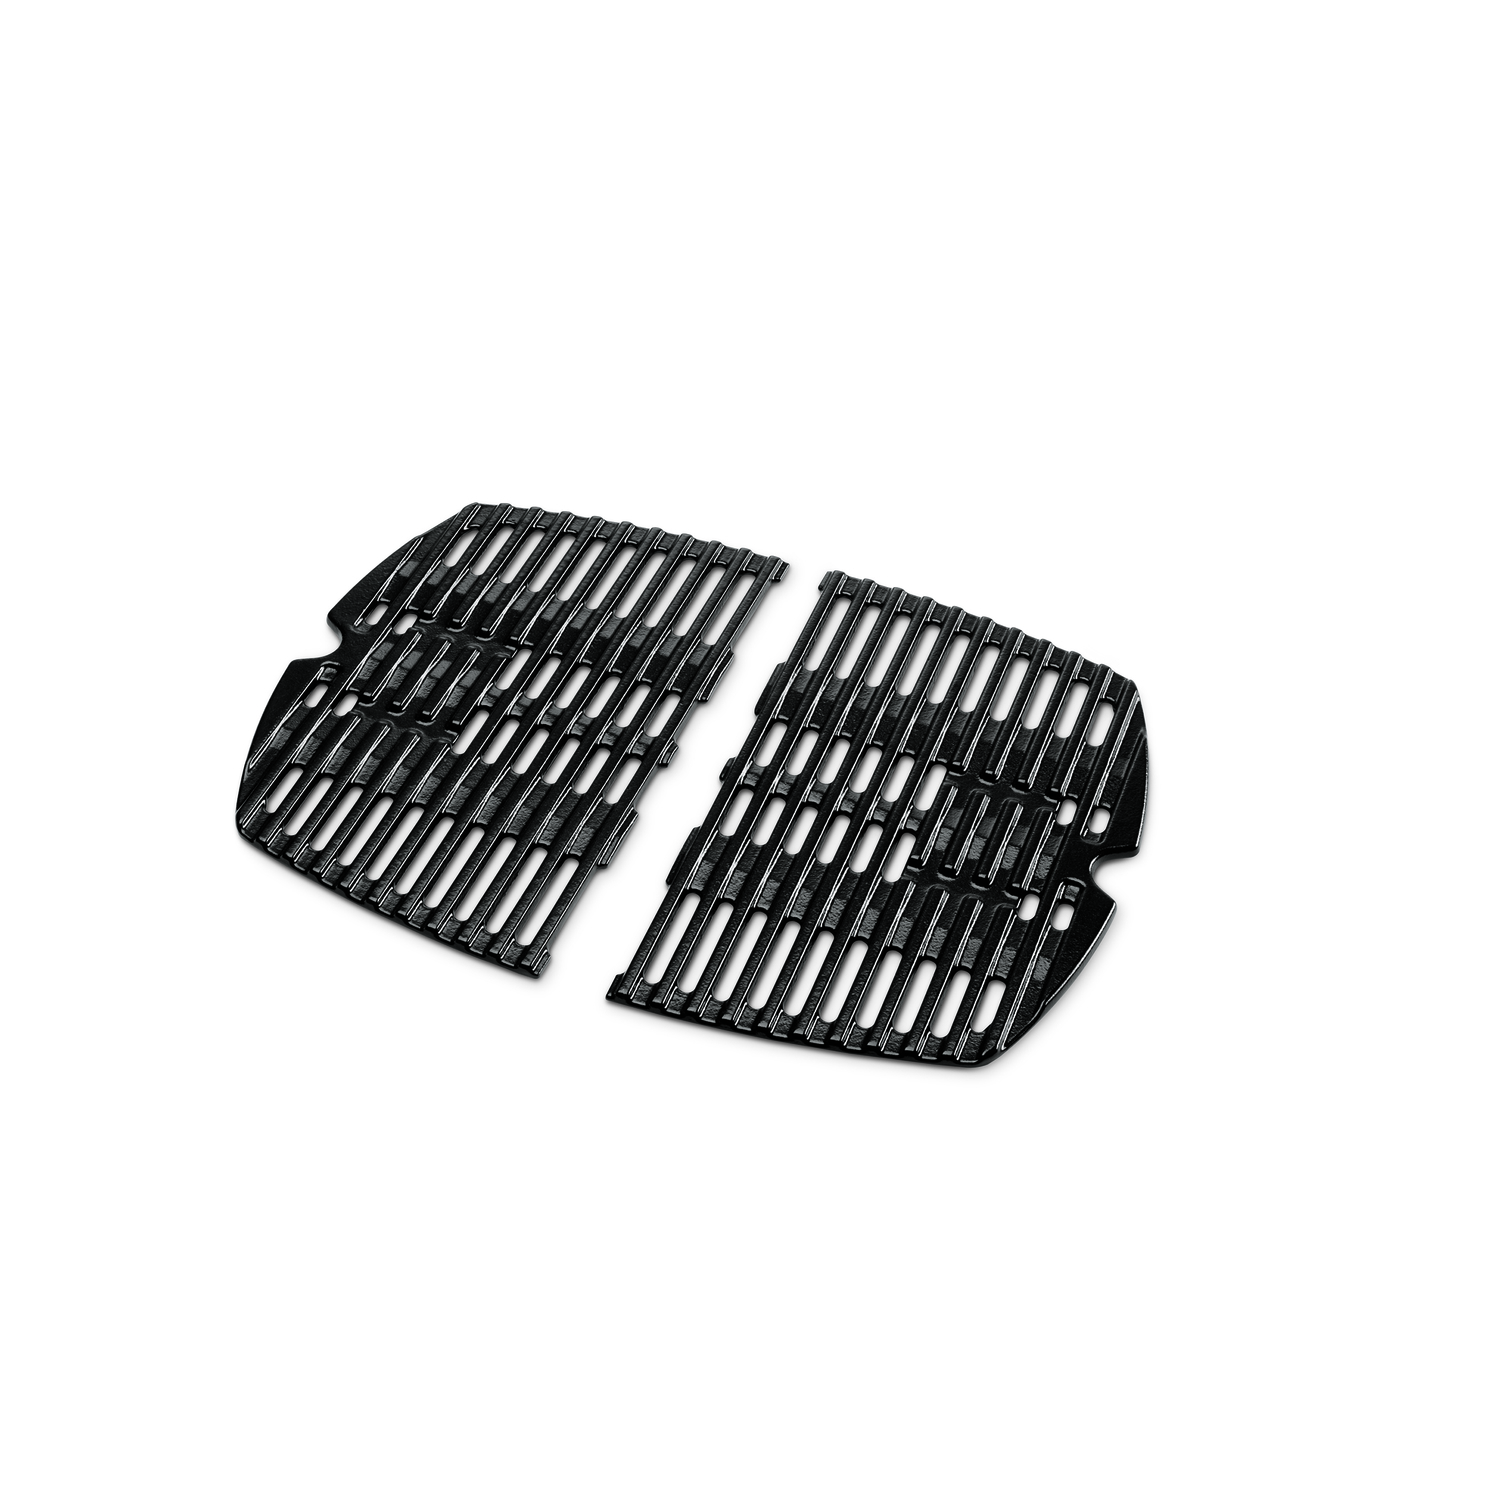 Weber  Q100/1000  Cast Iron/Porcelain  Grill Cooking Grate  17 in. L